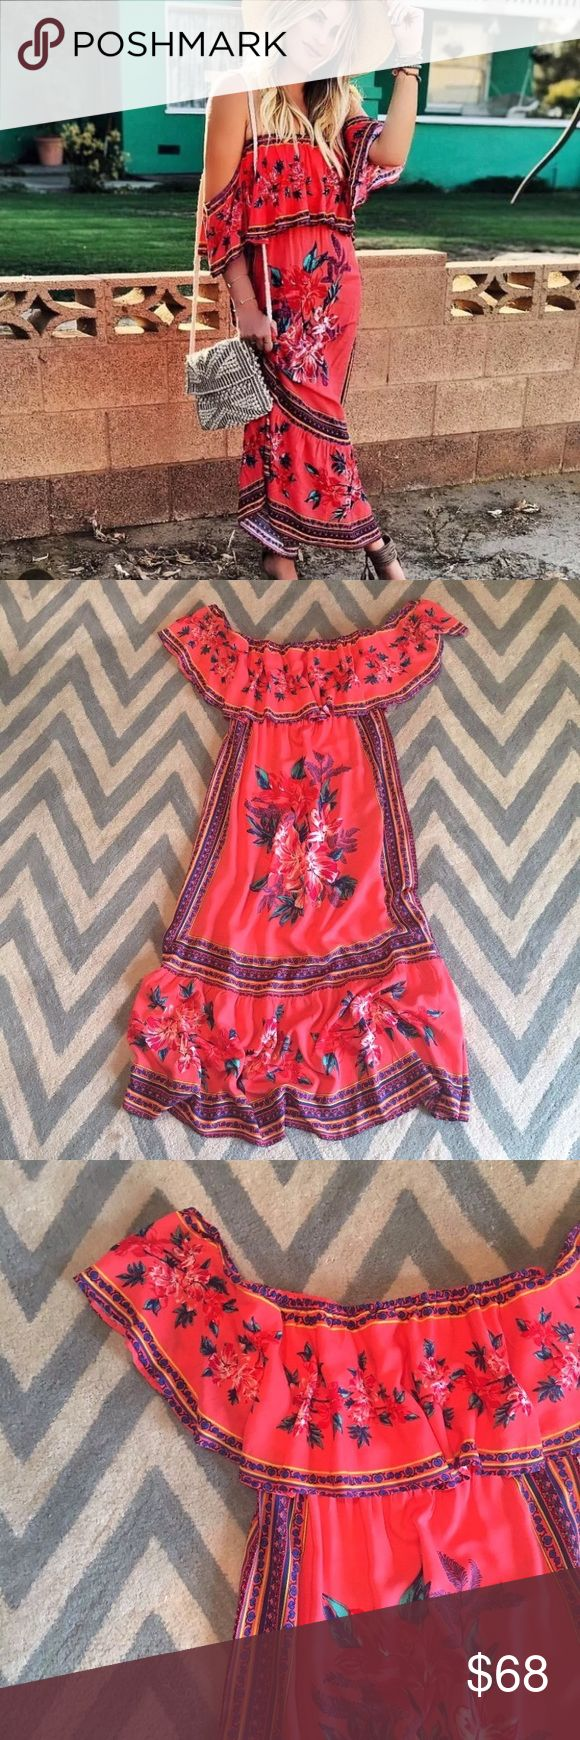 Anthropologie Off the Shoulder Coral Maxi Dress Brand new, never worn. Label: Flying Tomato from Anthropologie  Pit to pit: 16 inches  Length: 54 inches  Material: Rayon Anthropologie Dresses Maxi